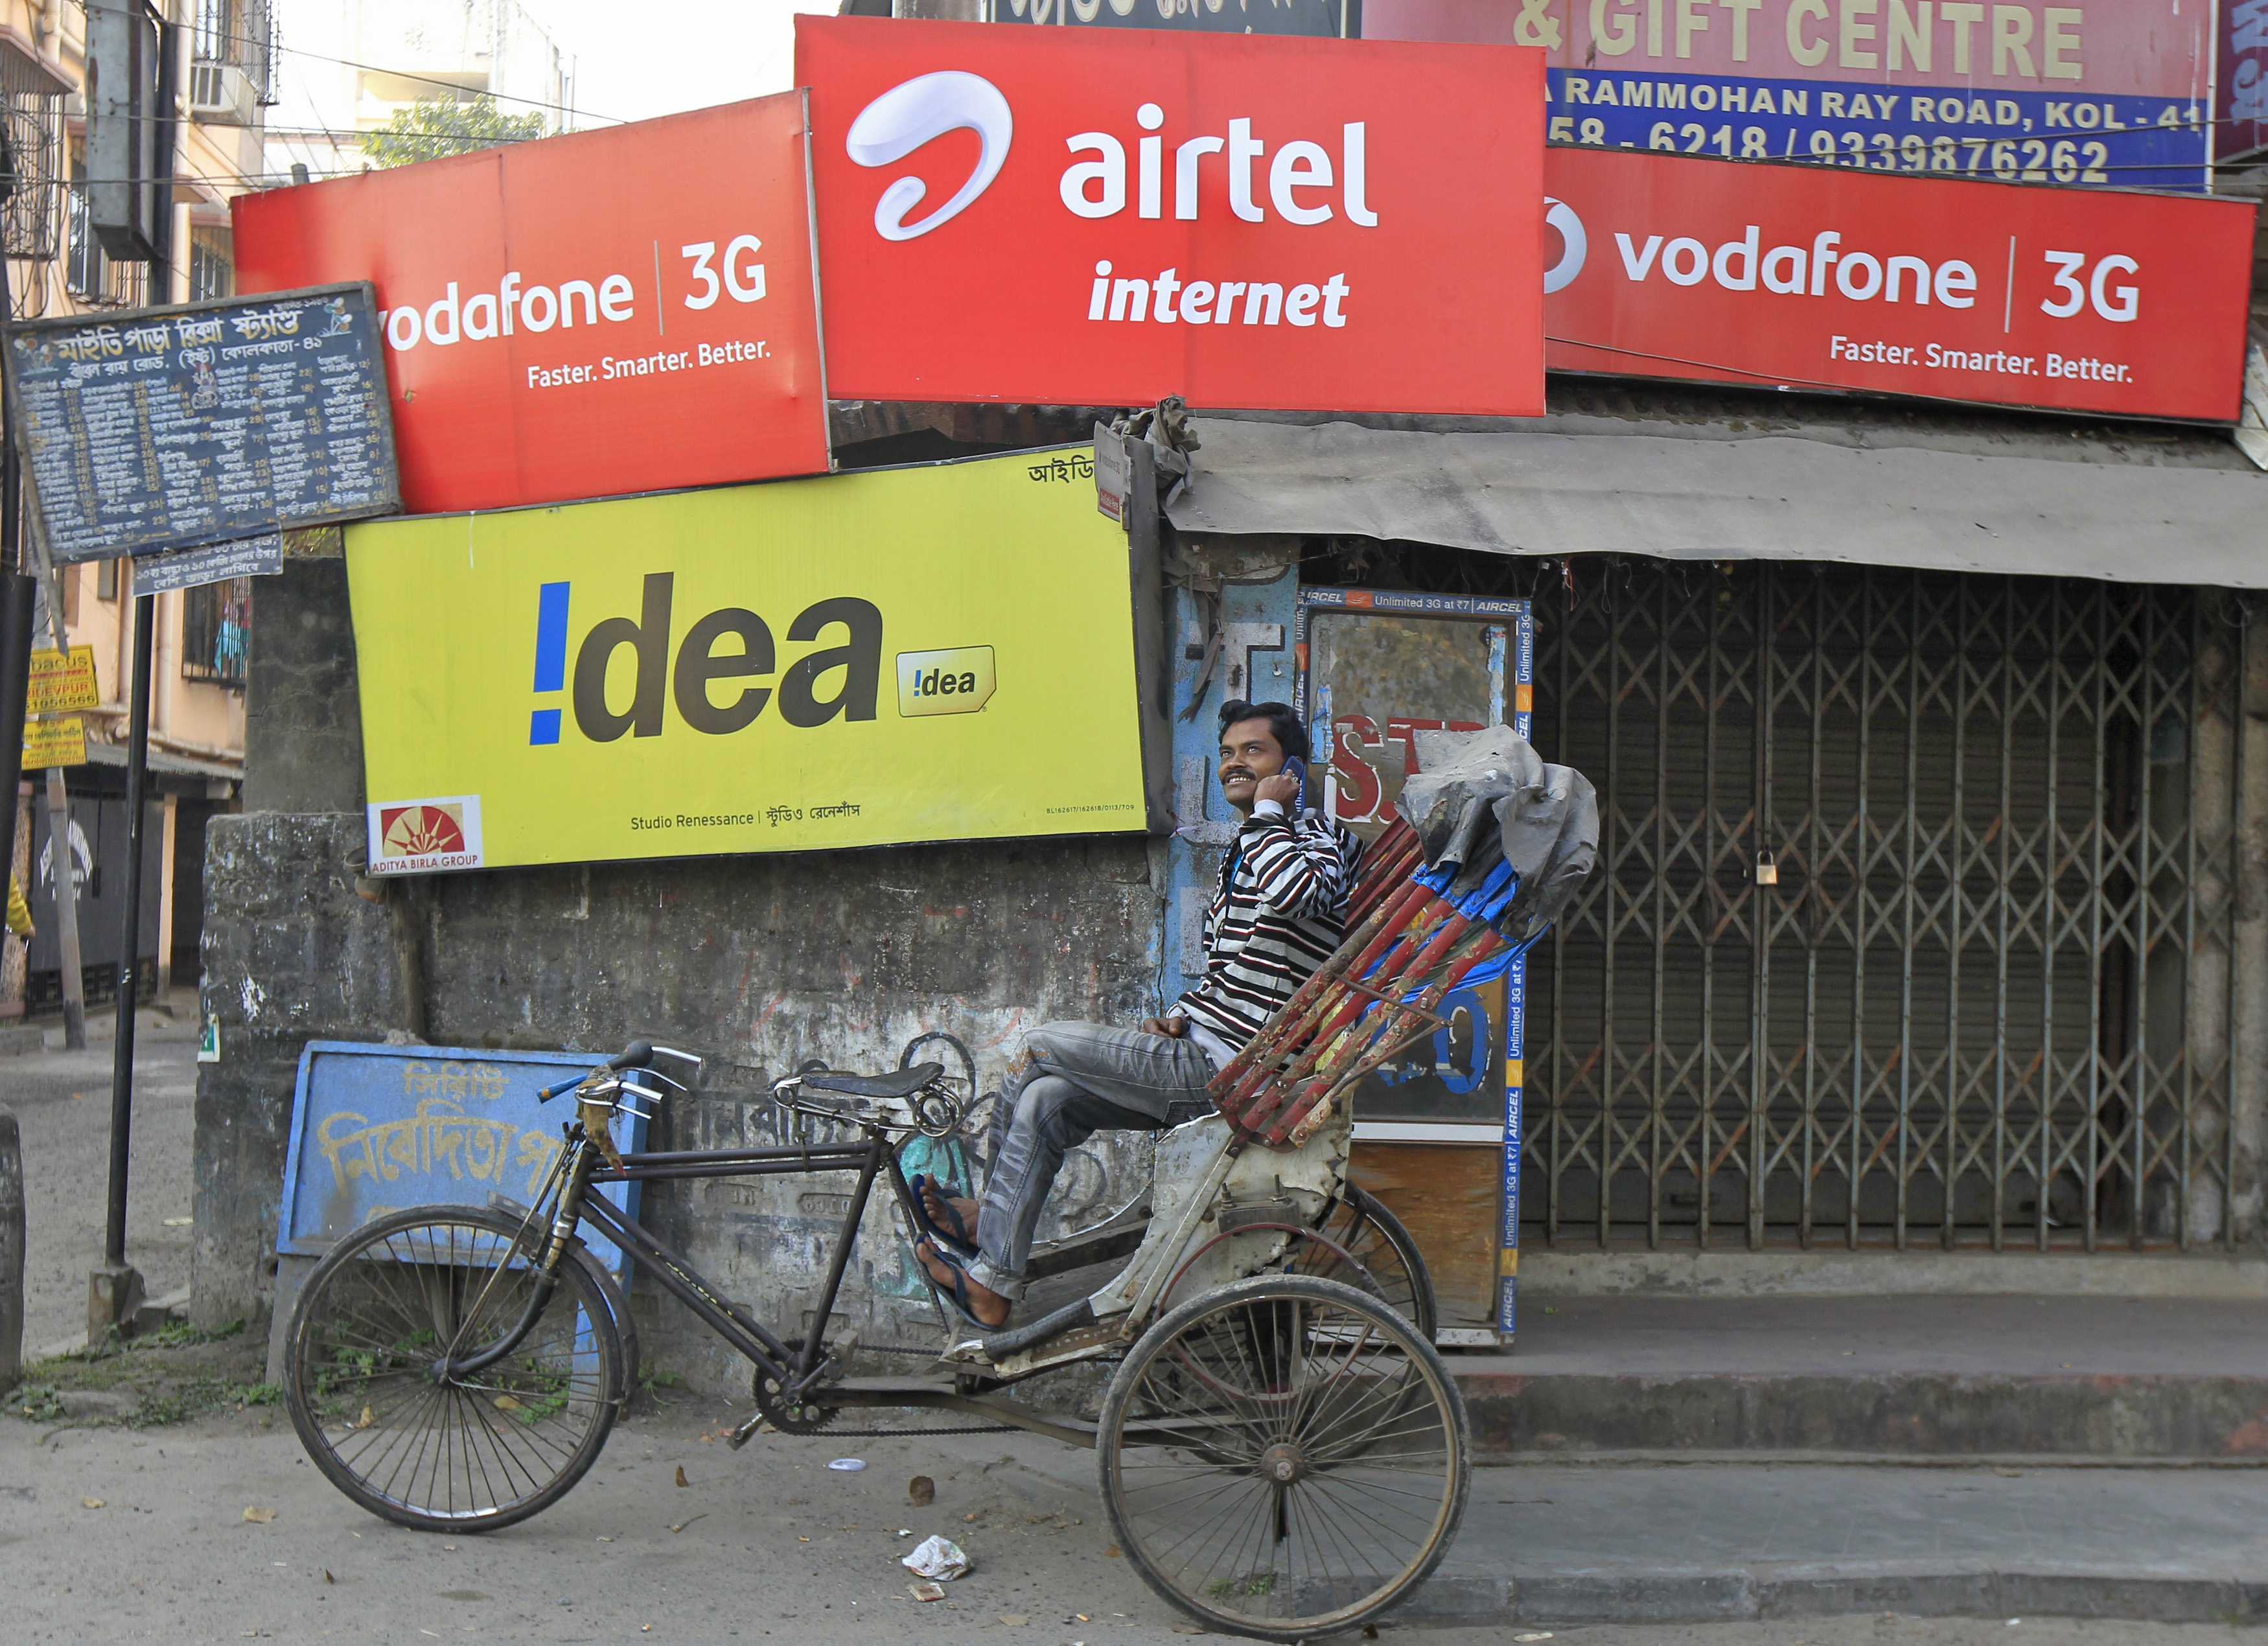 A rickshaw puller speaks on his mobile phone as he waits for customers in front of advertisement billboards belonging to telecom companies in Kolkata February 3, 2014. REUTERS/Rupak De Chowdhuri/Files